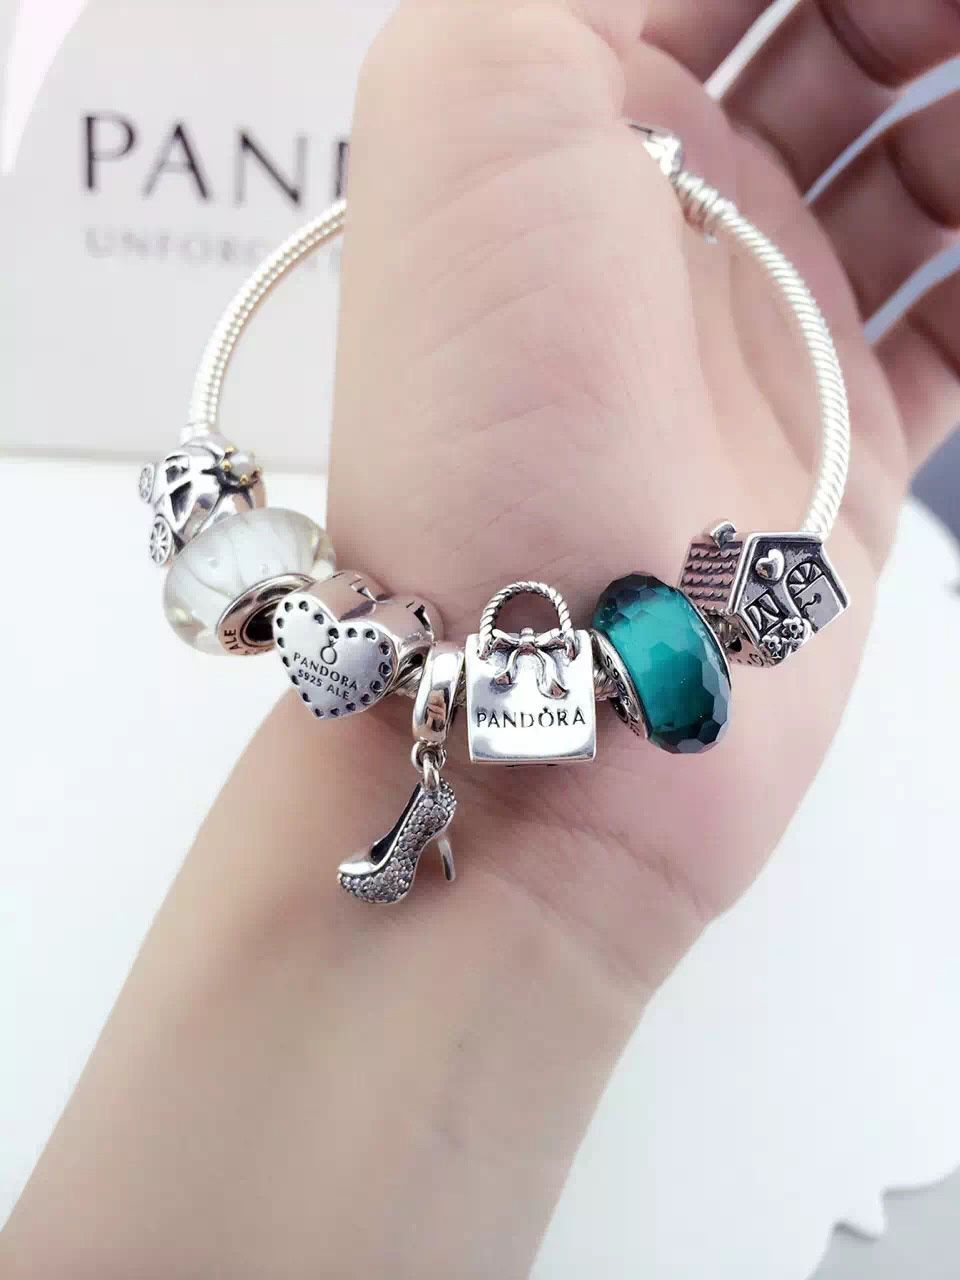 73e1ab5c1 ... coupon for 199 pandora charm bracelet. hot sale sku cb01559 pandora  bracelet ideas pandorapassion d4115